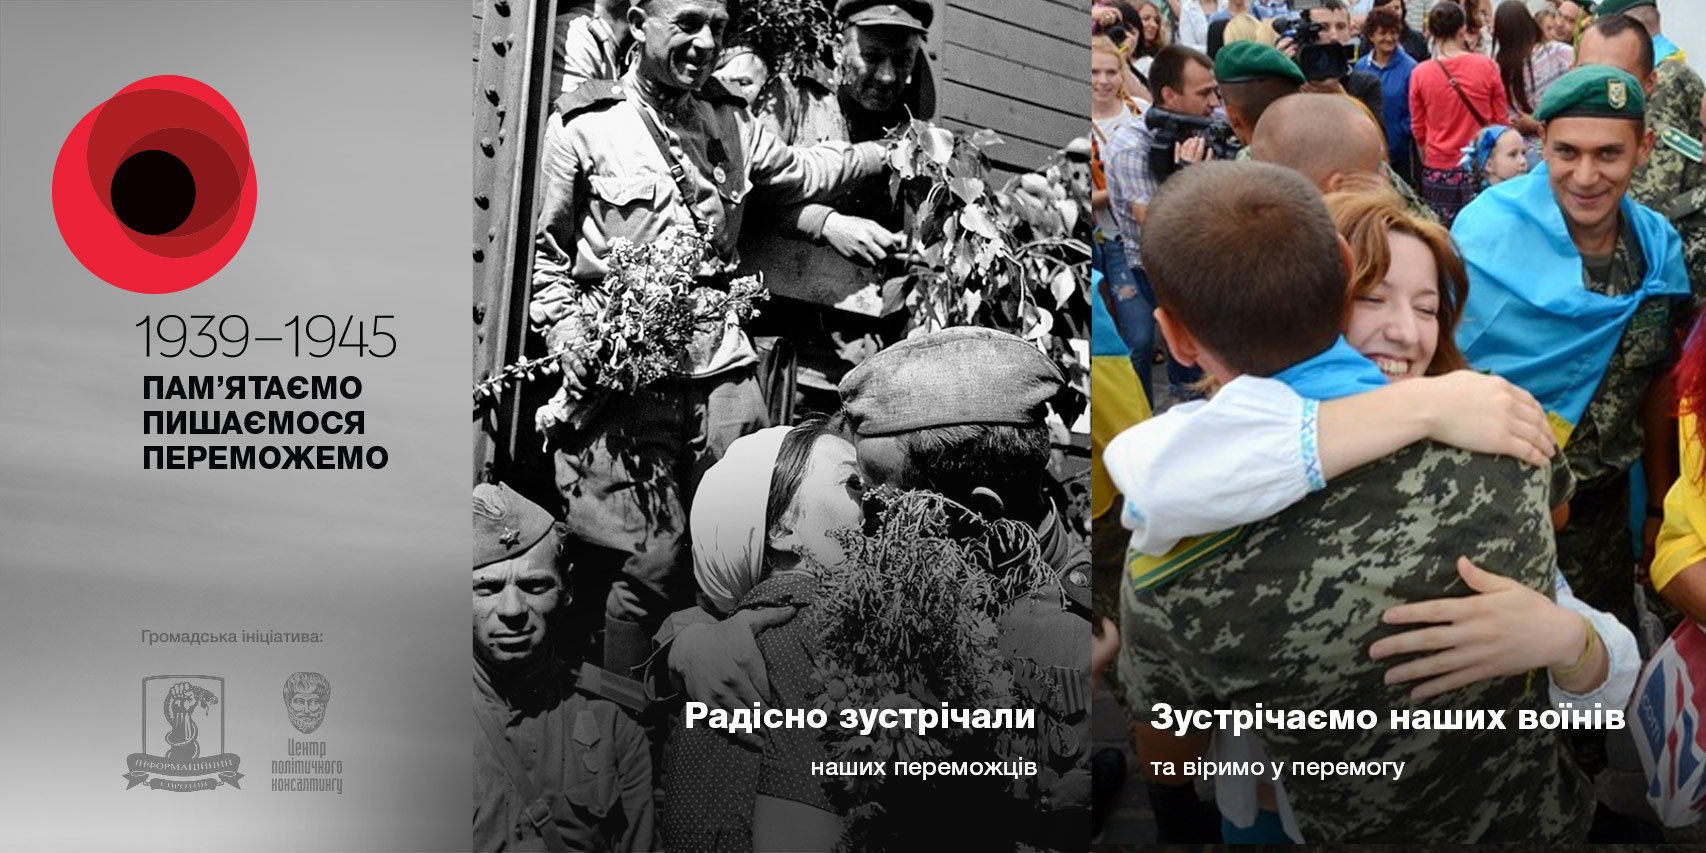 A Warm Welcome: Joyfully greeting the victors – Meeting our soldiers warmly and believing in victory.